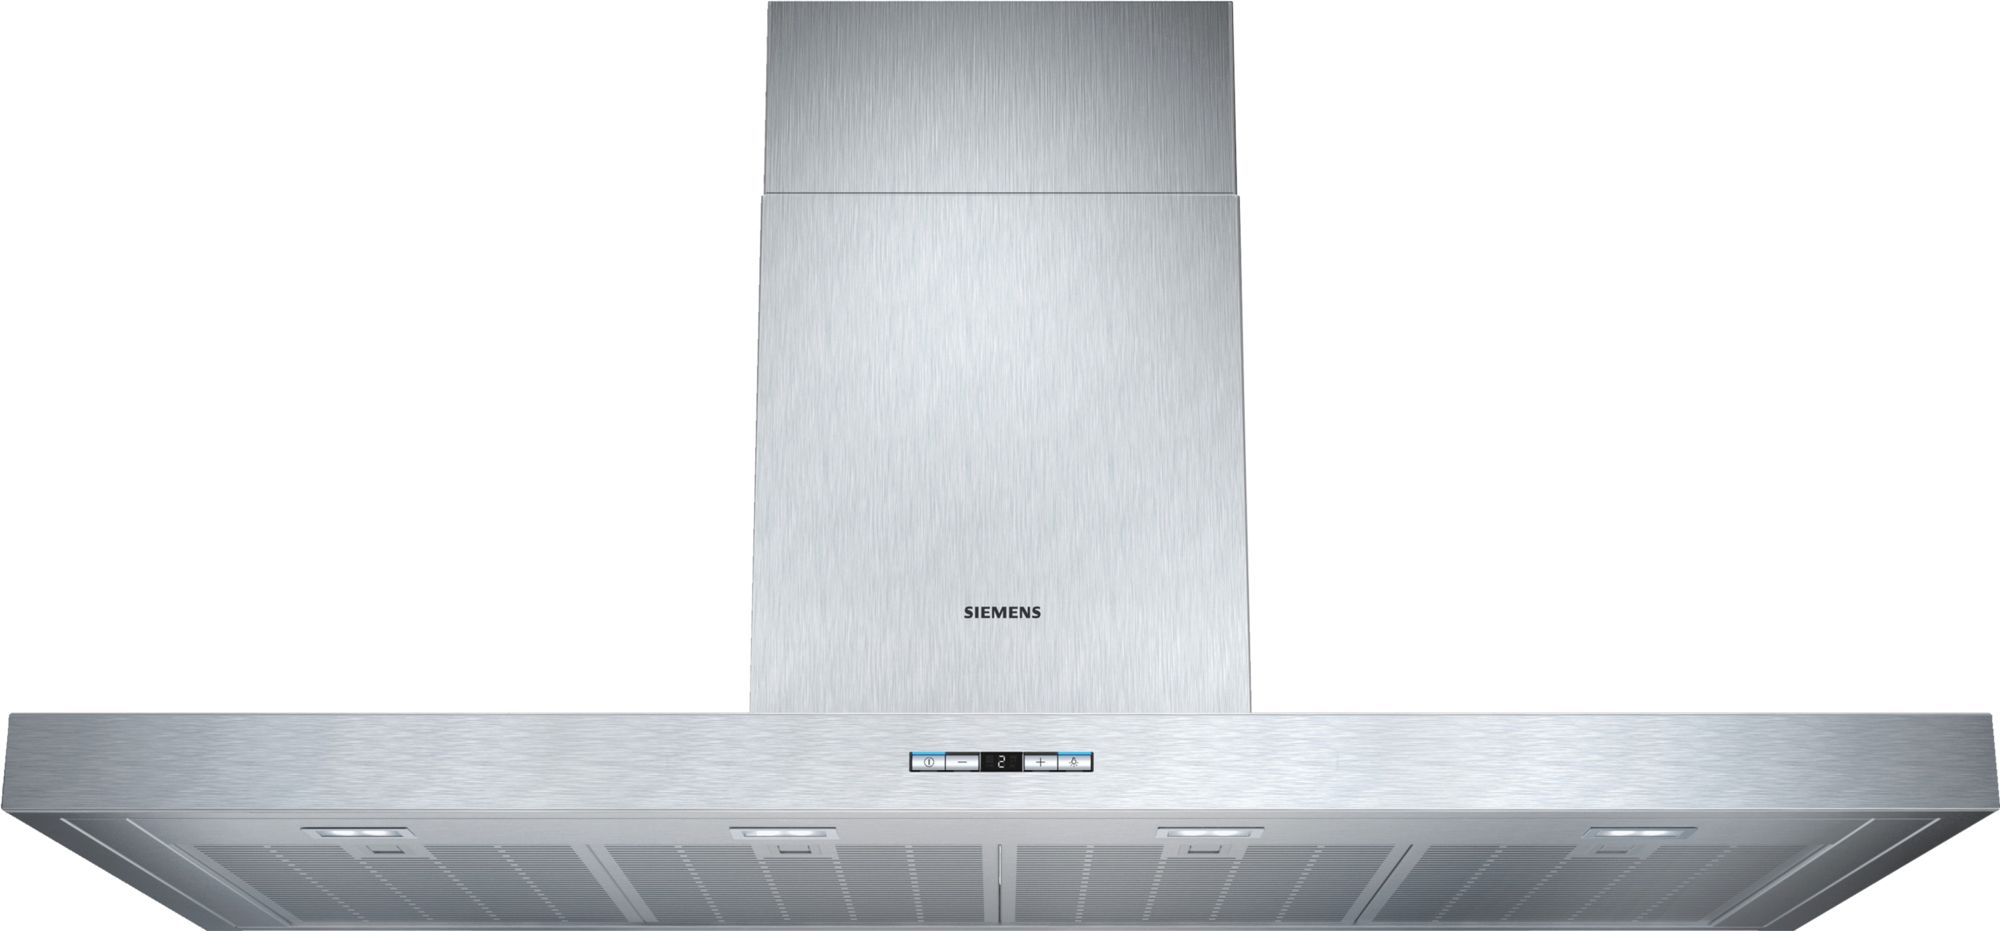 Siemens LC28BH542 - Campana Decorativa Pared 120 Cm Clase A Inoxidable - Zoom